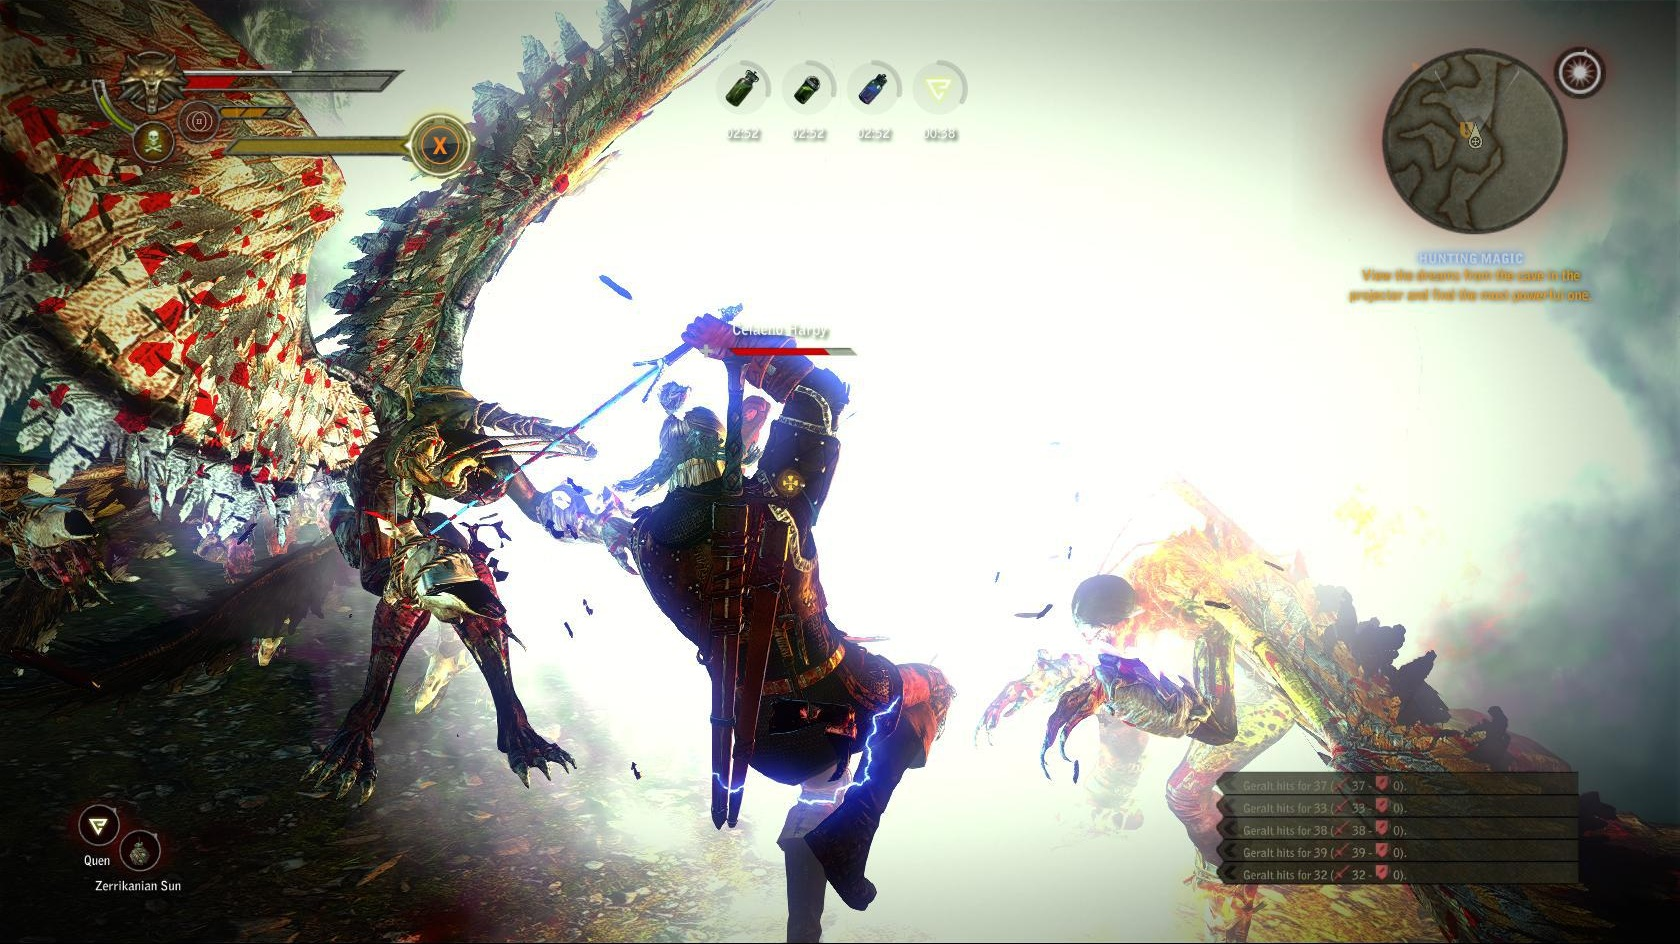 The Witcher 2 1 2 Patch Released With Balance Improvements Dlc Neoseeker